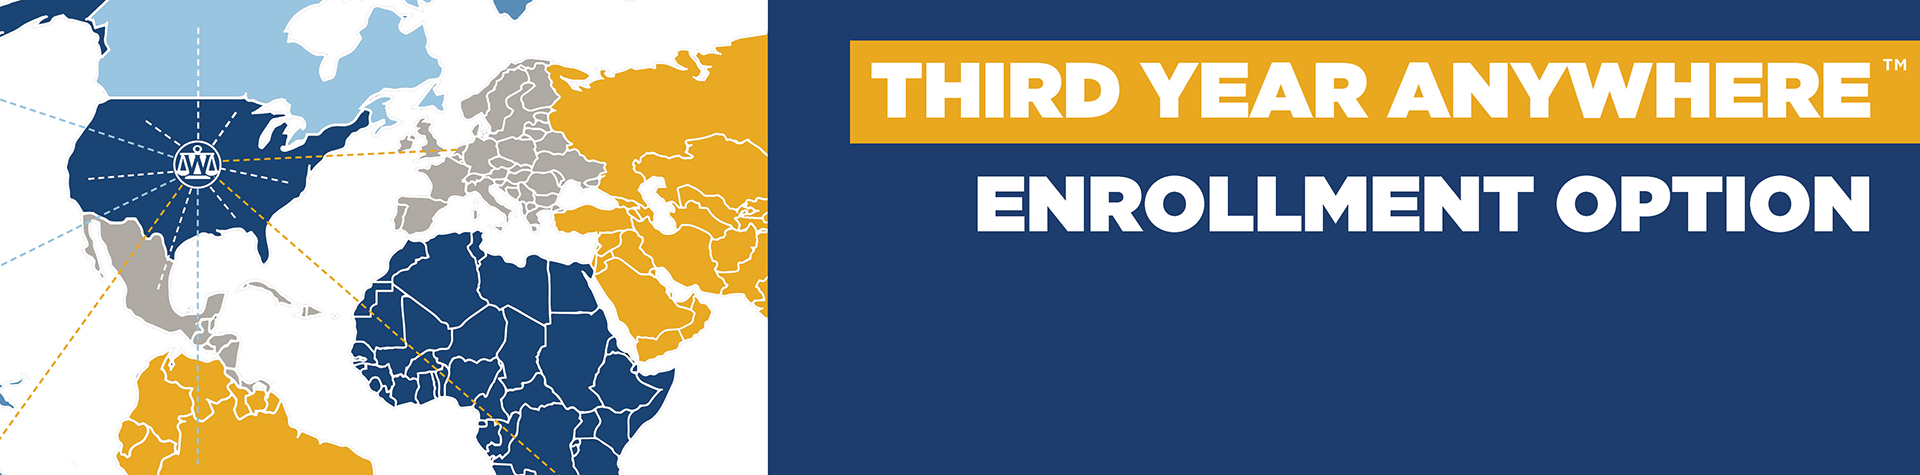 Learn about Washburn Law's Third Year Anywhere Enrollment Option.